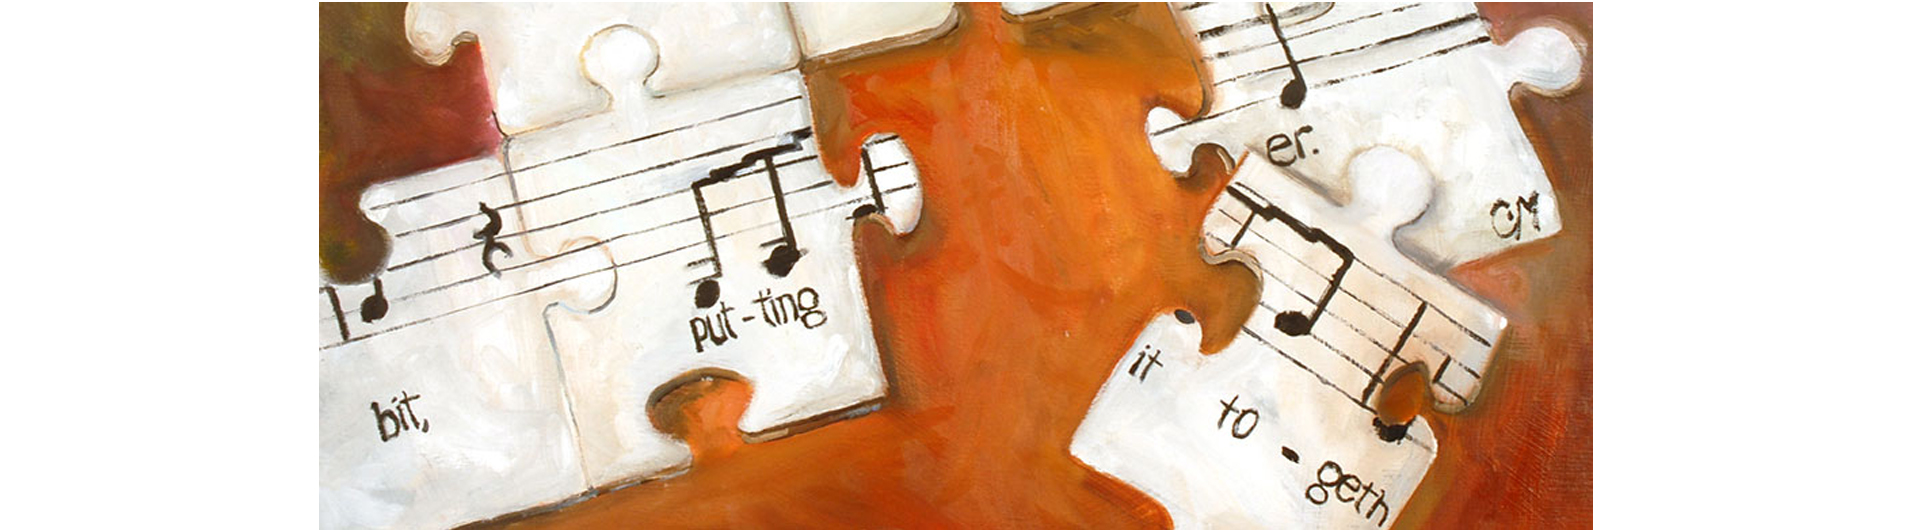 Putting It Together title graphic with puzzle pieces and musical notes